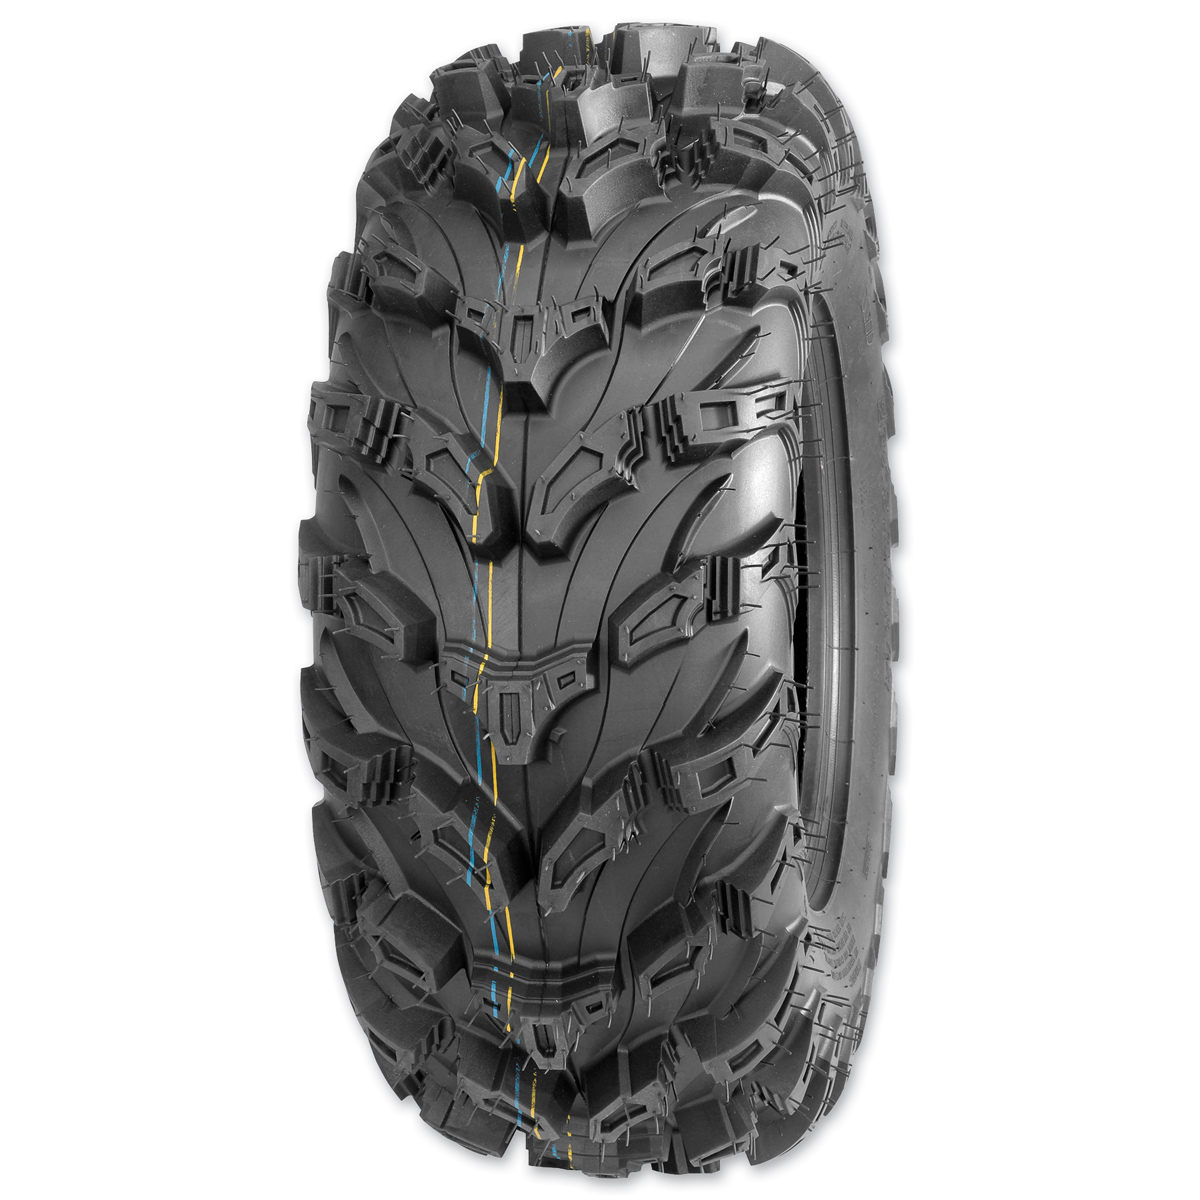 Quadboss QBT672 27X9R14 8-Ply Front Tire